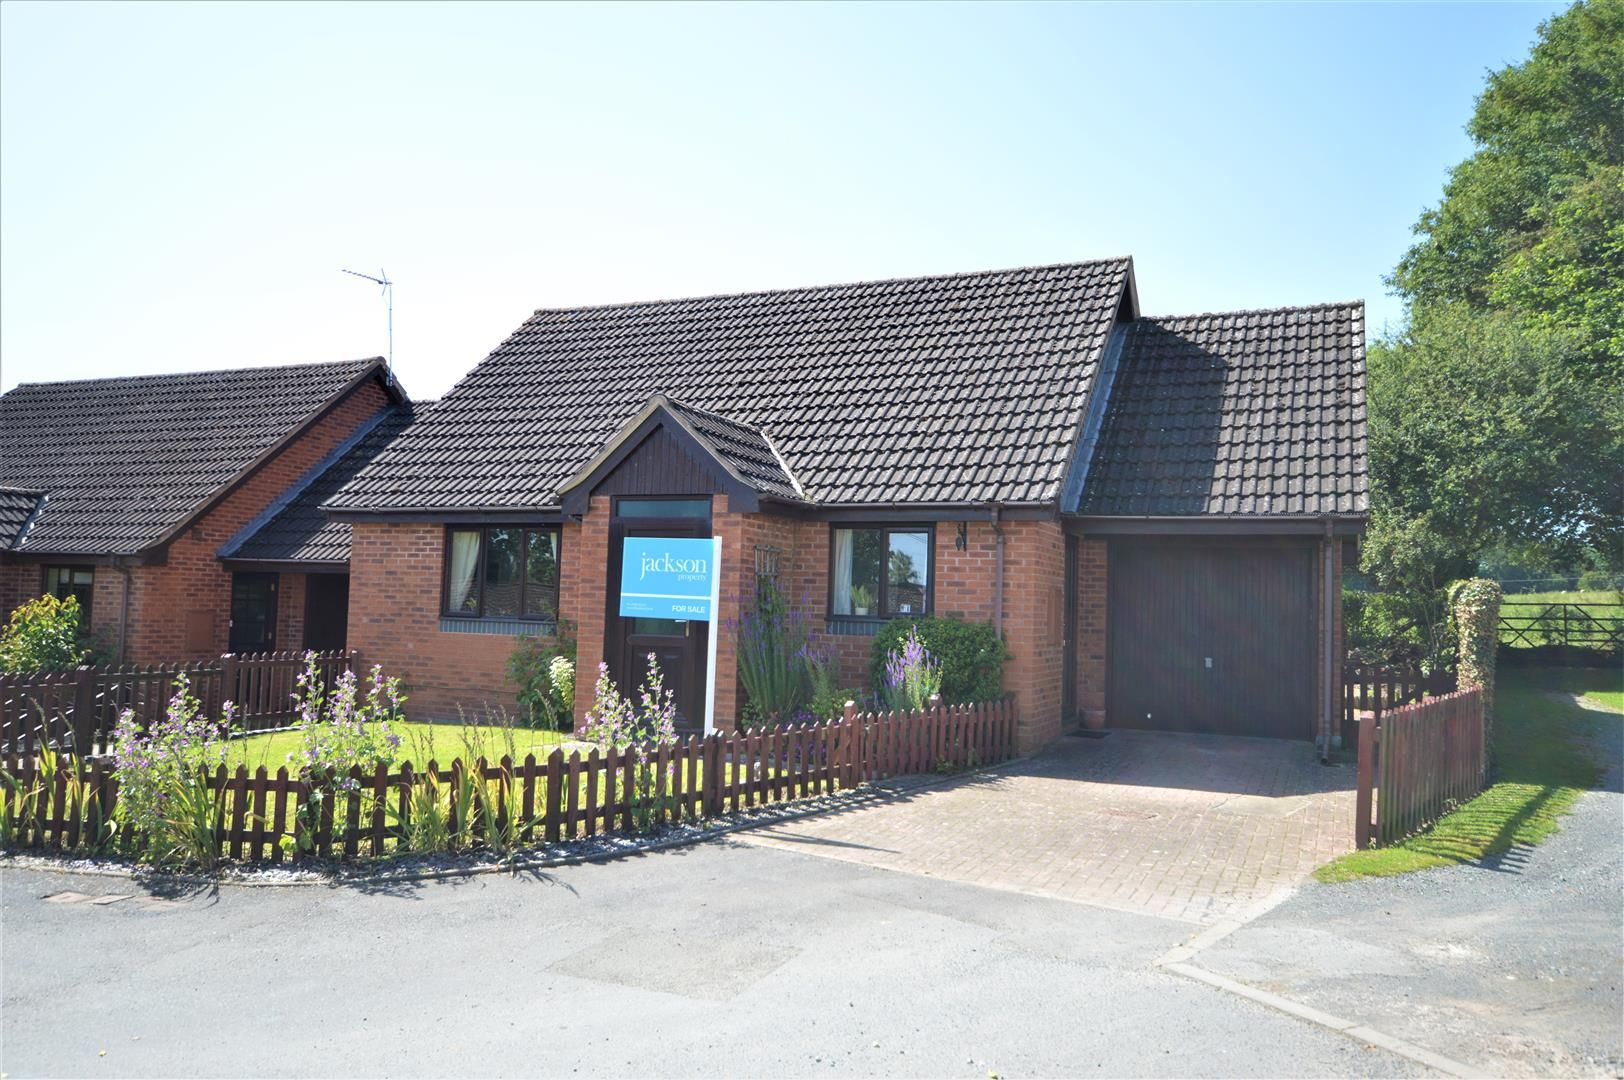 2 bed detached bungalow for sale in Almeley, HR3